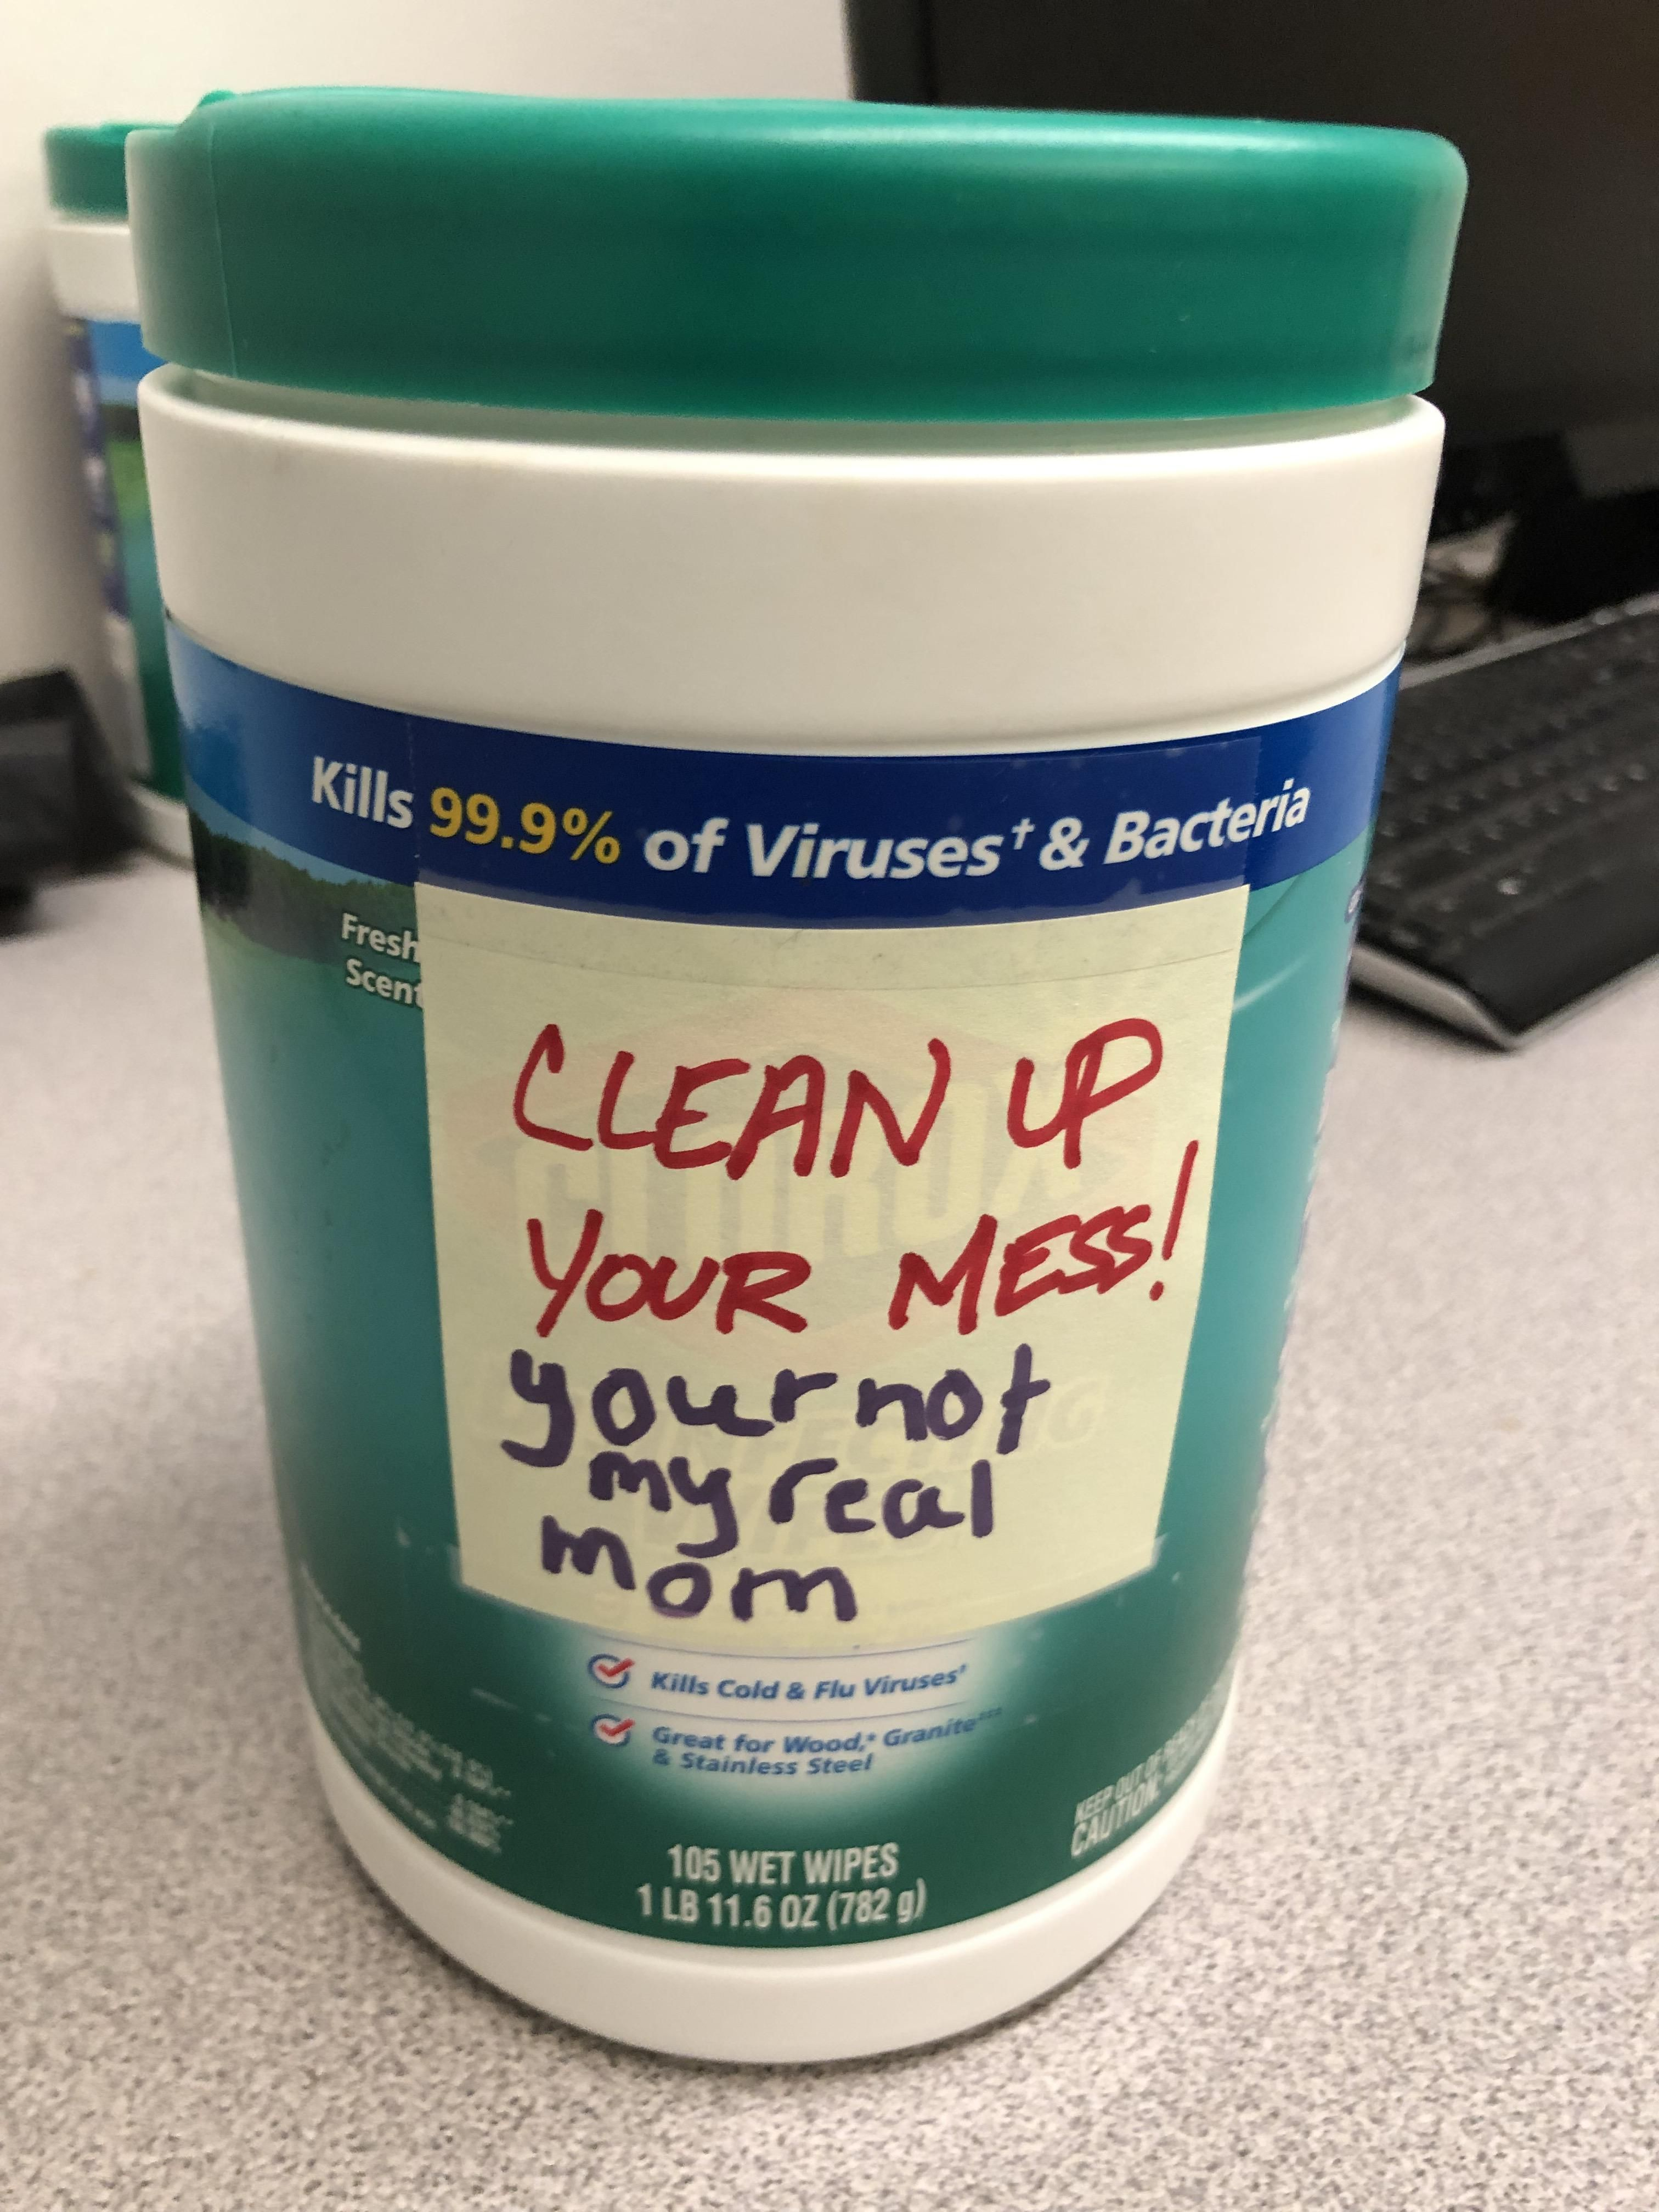 Bought Clorox wipes for the break room because I thought I worked with a bunch of children. Turns out I do...